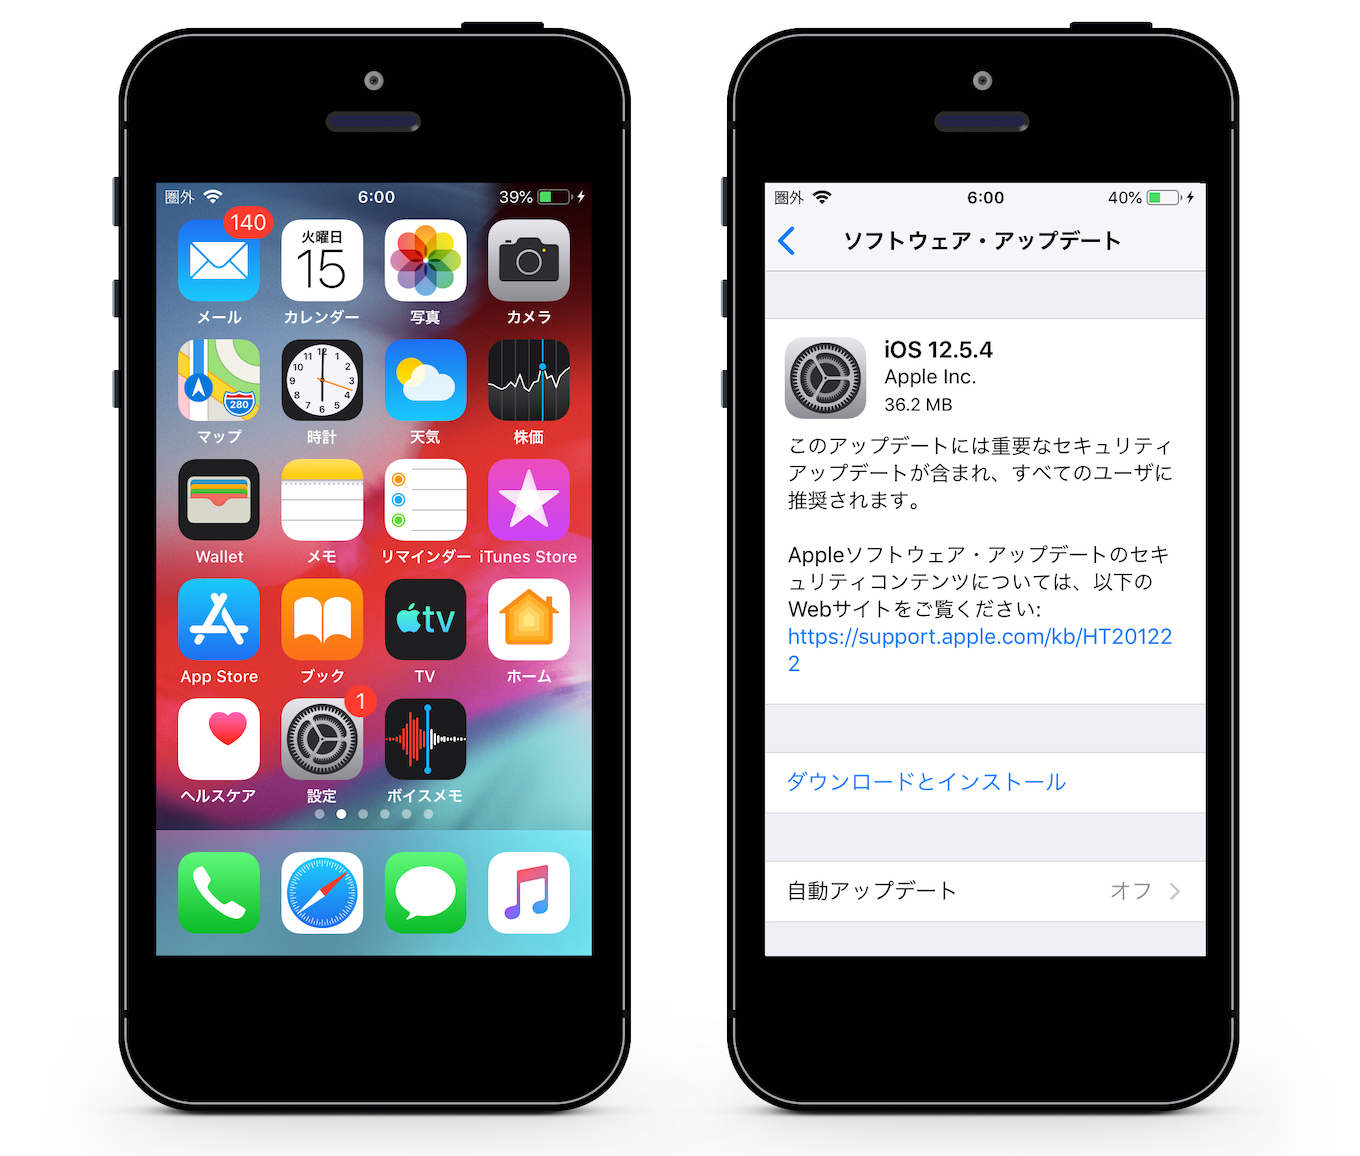 iOS 12.5.4 for iPhone 5s